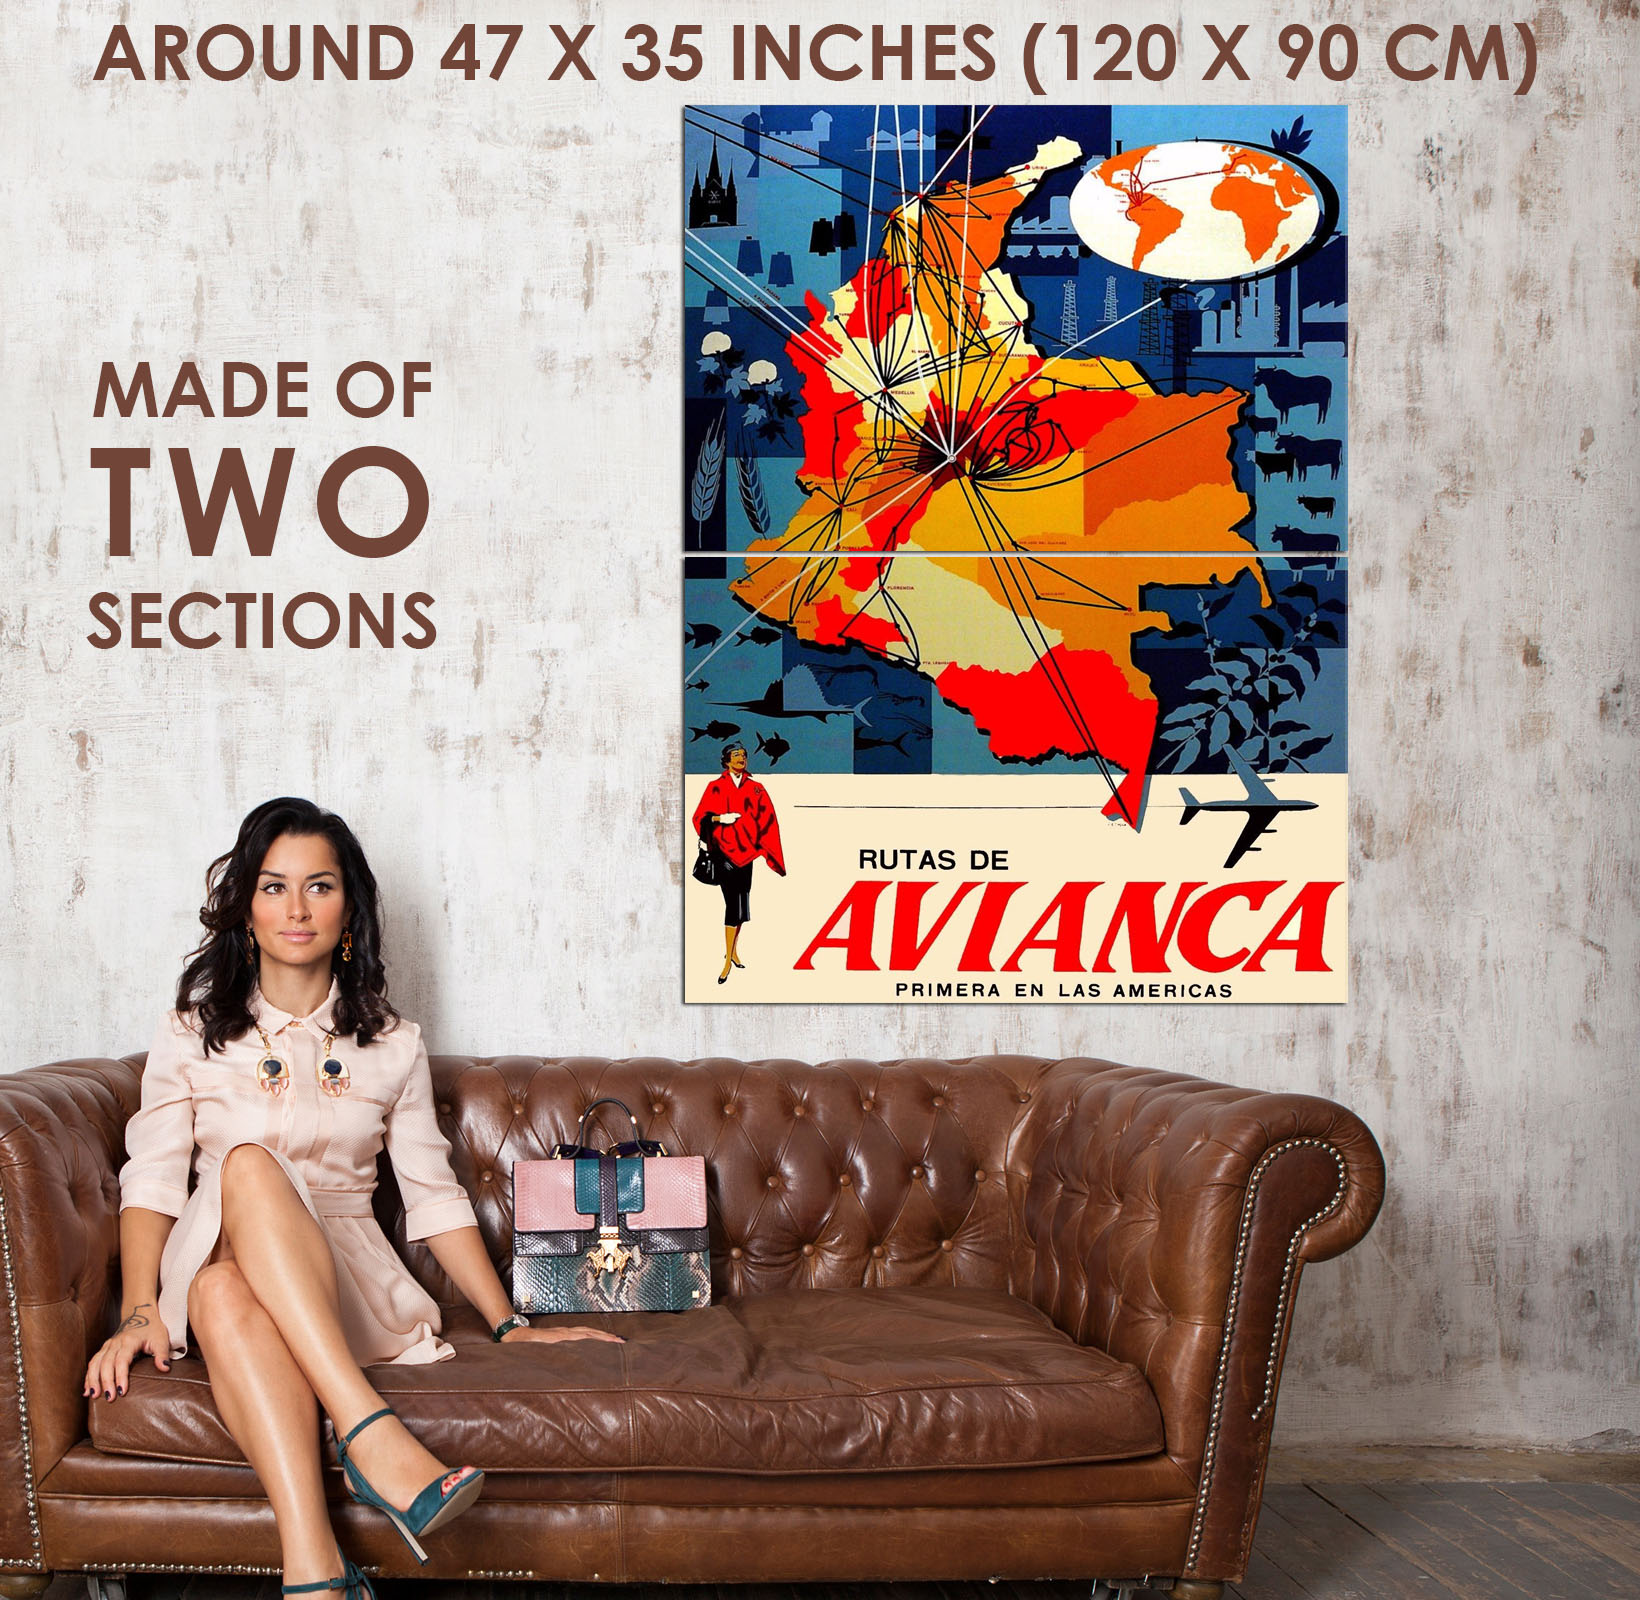 94376-Colombia-Colombian-South-America-Avianca-Map-Decor-WALL-PRINT-POSTER-AU